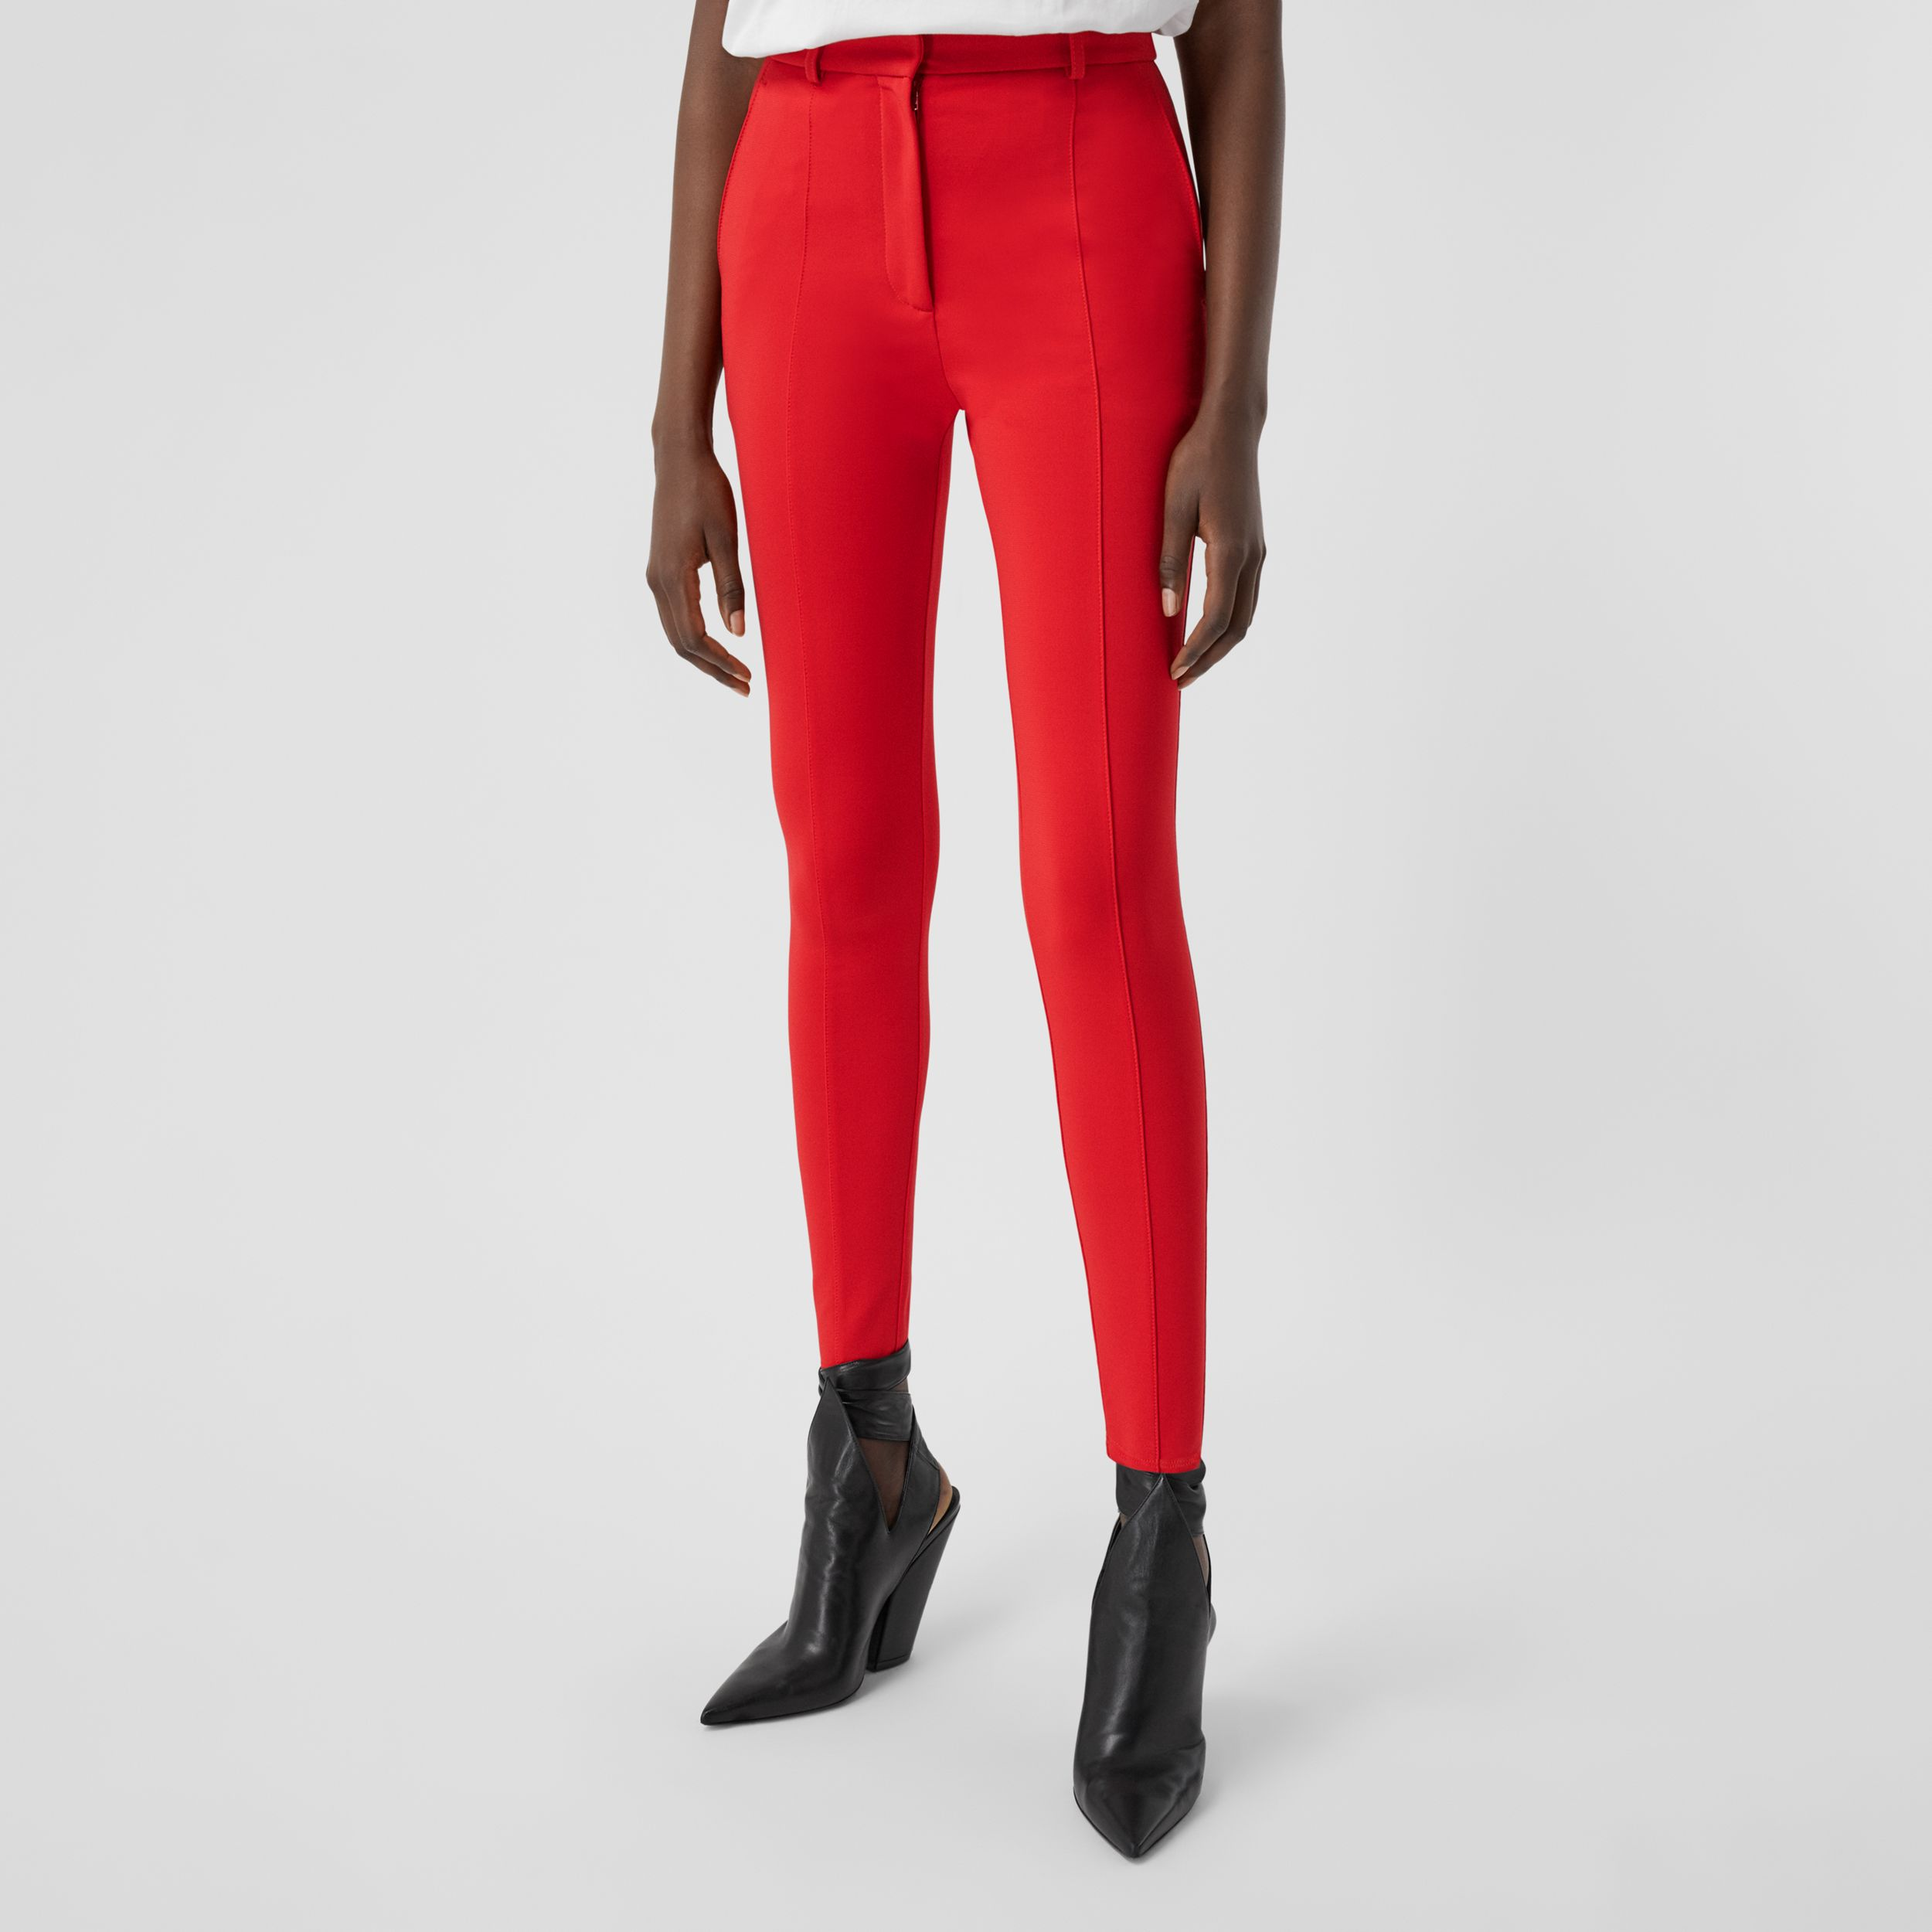 Stretch Jersey Jodhpurs in Bright Red - Women | Burberry - 4